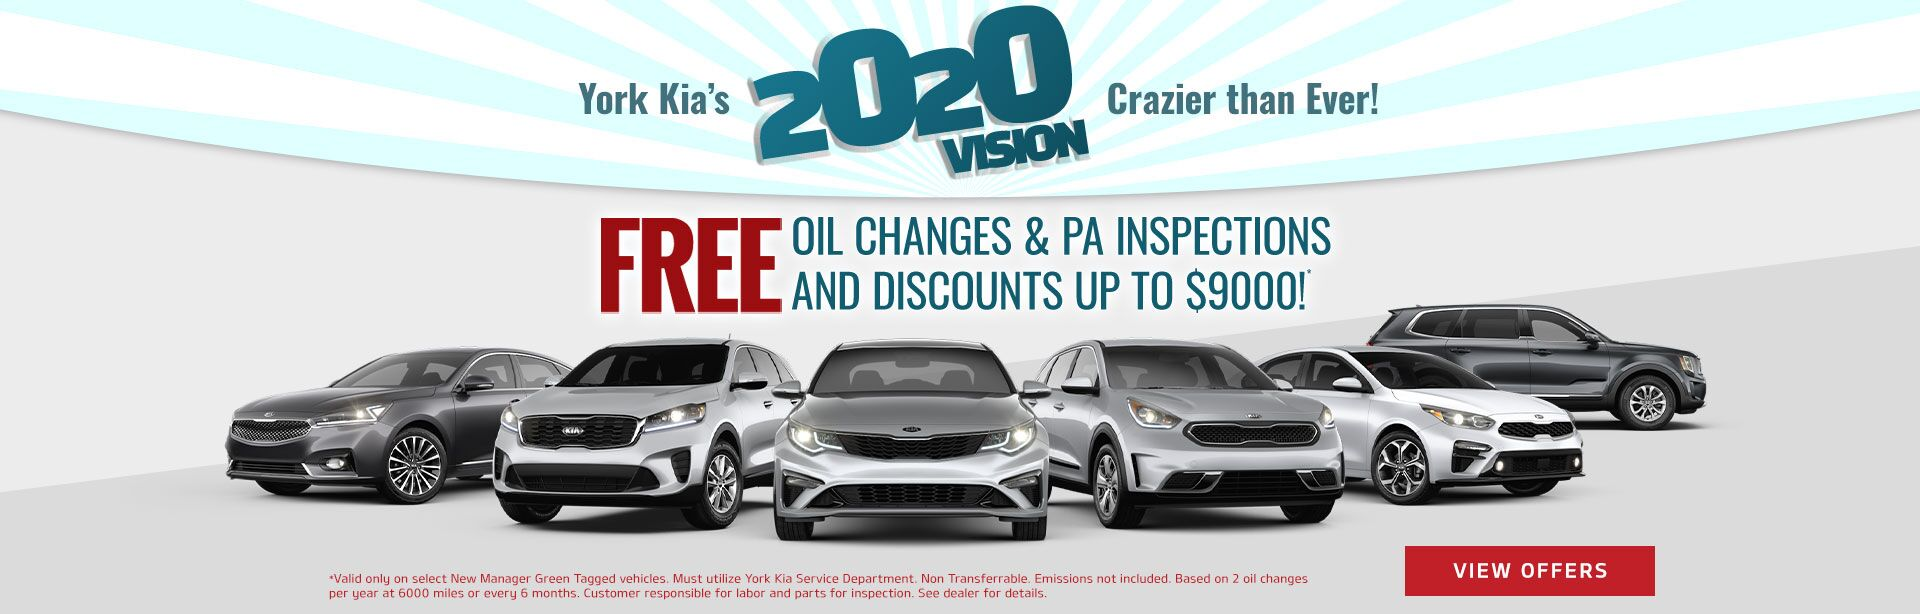 Free Oil Changes & PA Inspections and Discounts up to $9000